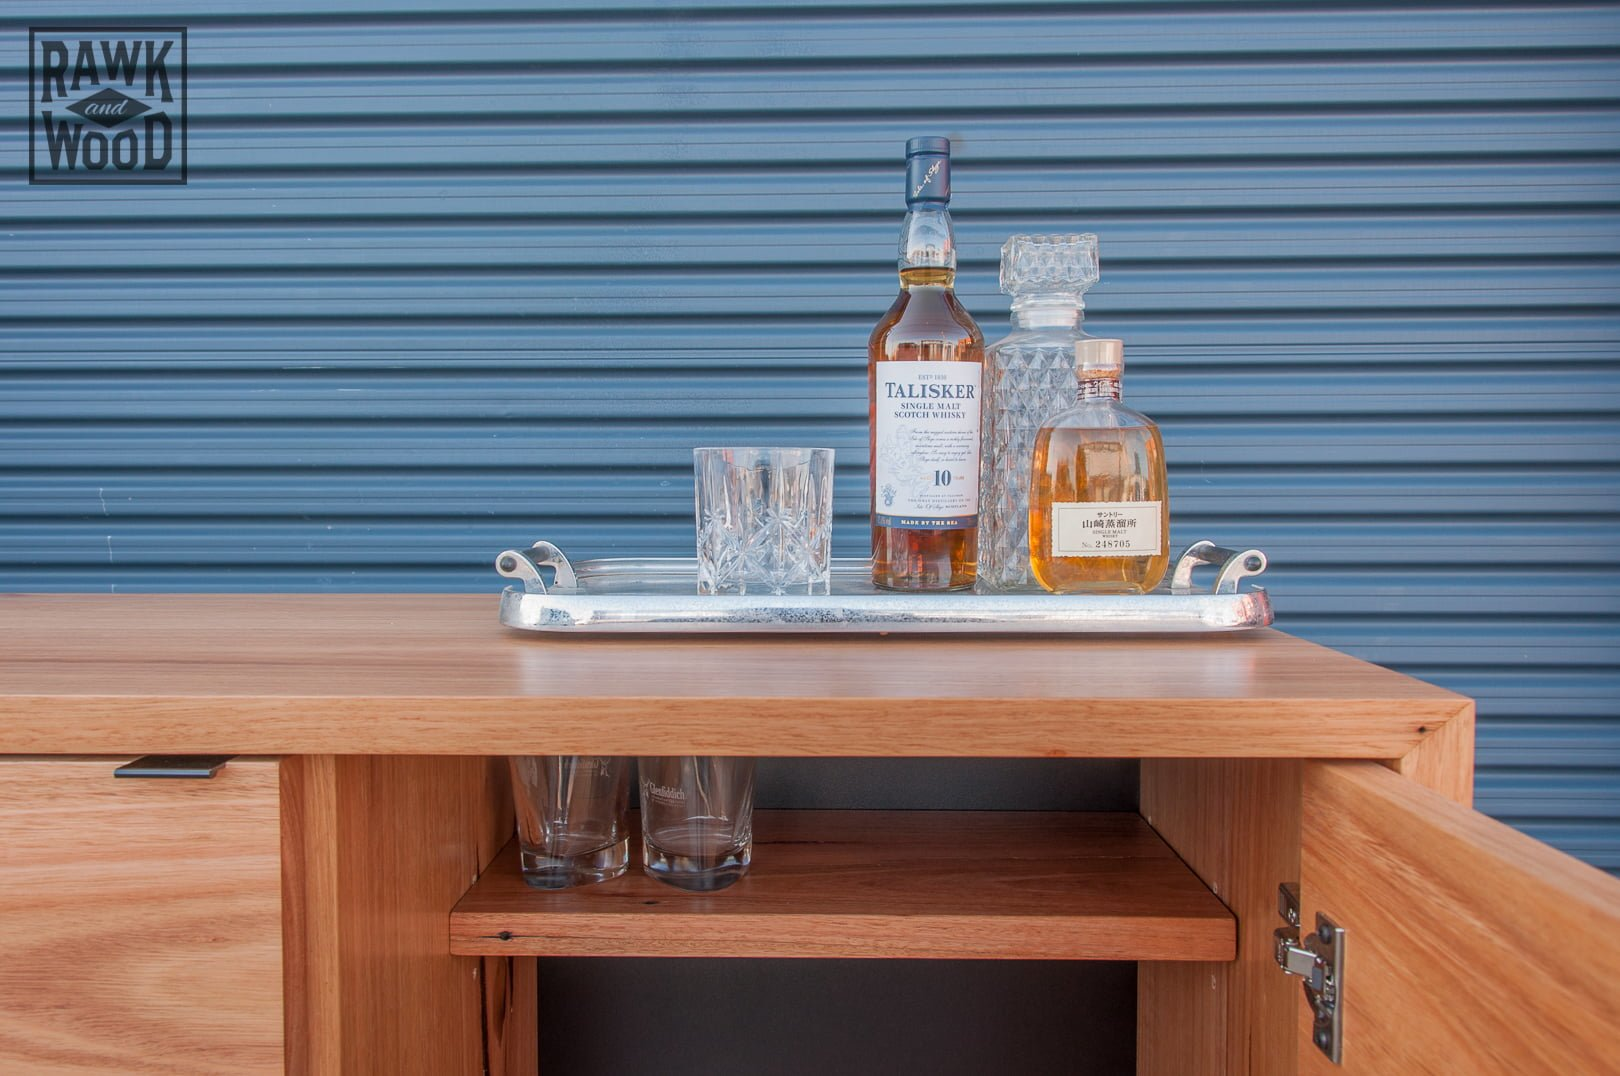 recycled-timber-liquor-cabinet, made in Melbourne by Rawk and Wood